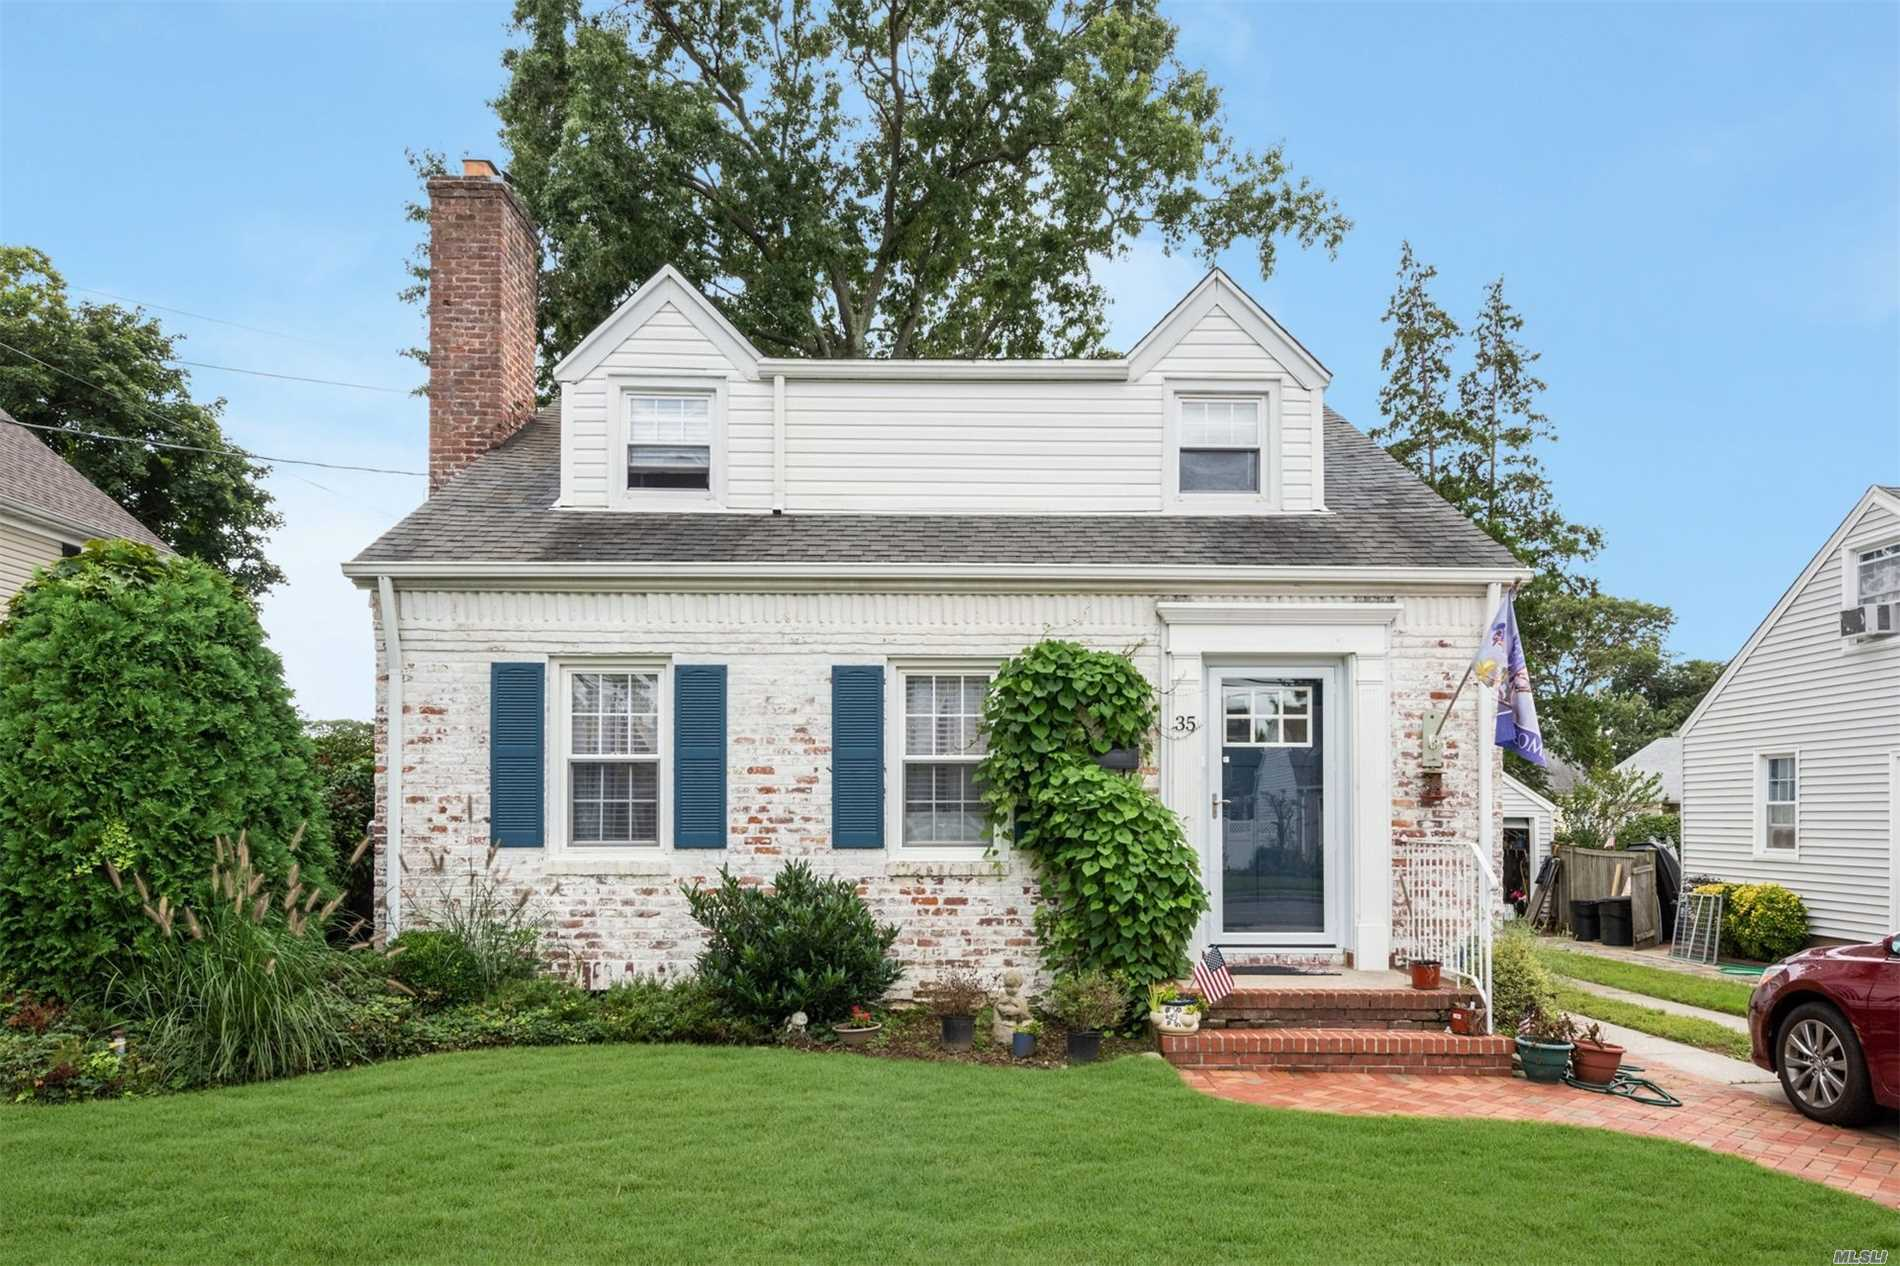 Photo of home for sale at 35 Doncaster Rd, Malverne NY